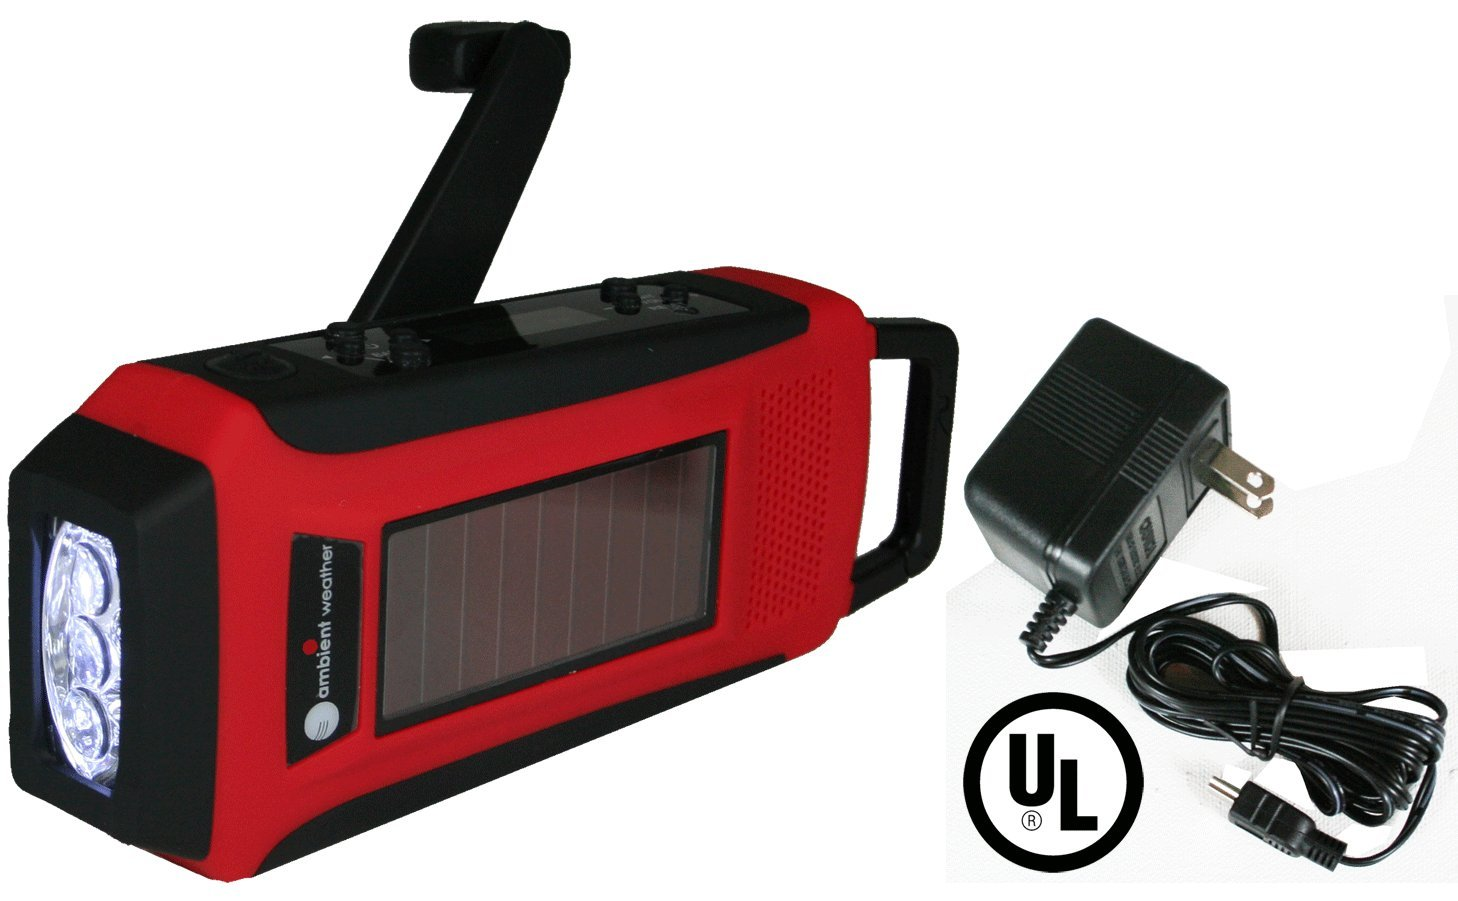 Solar Hand Crank Weather Alert Radio, Flashlight, Smart Phone Charger